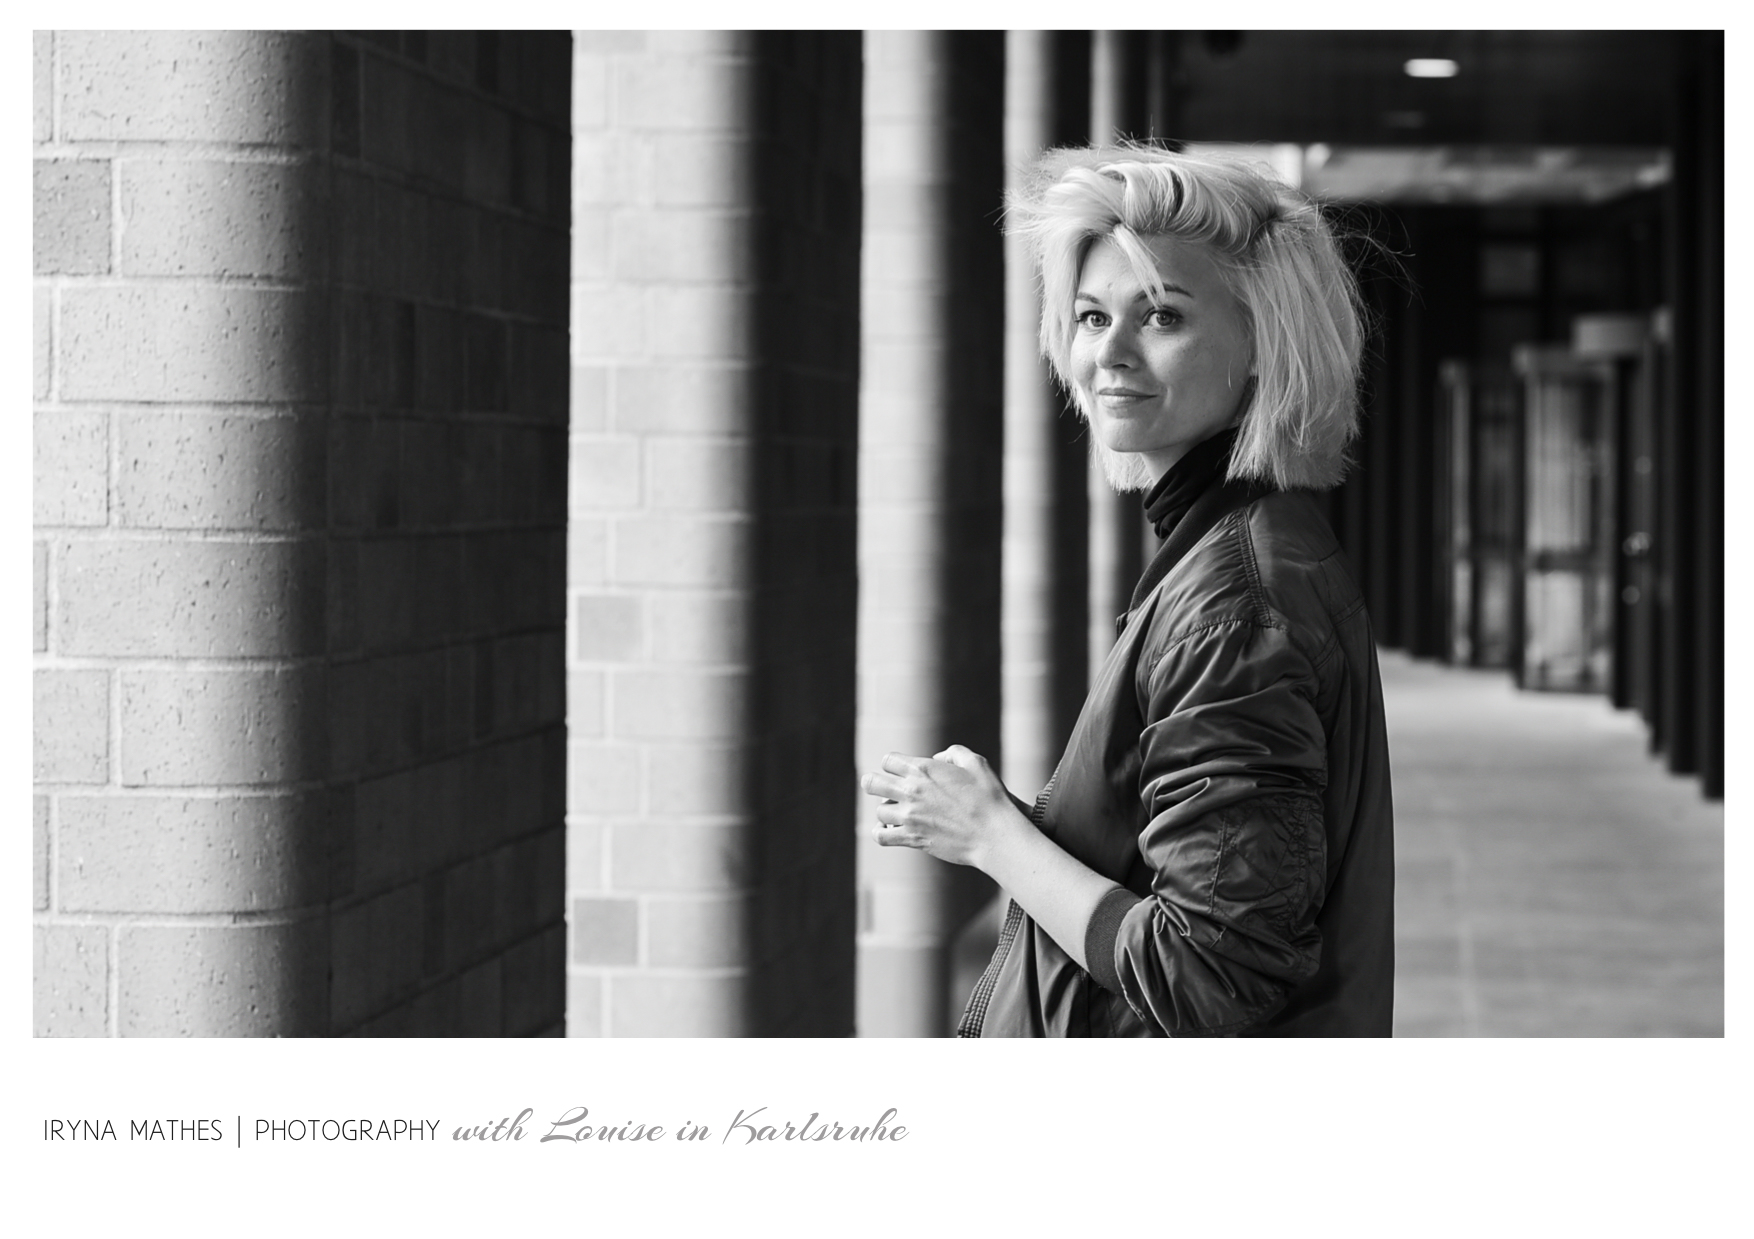 Model Louise in Karlsrihe, Iryna Mathes People Photography. Streetlife Fotografie